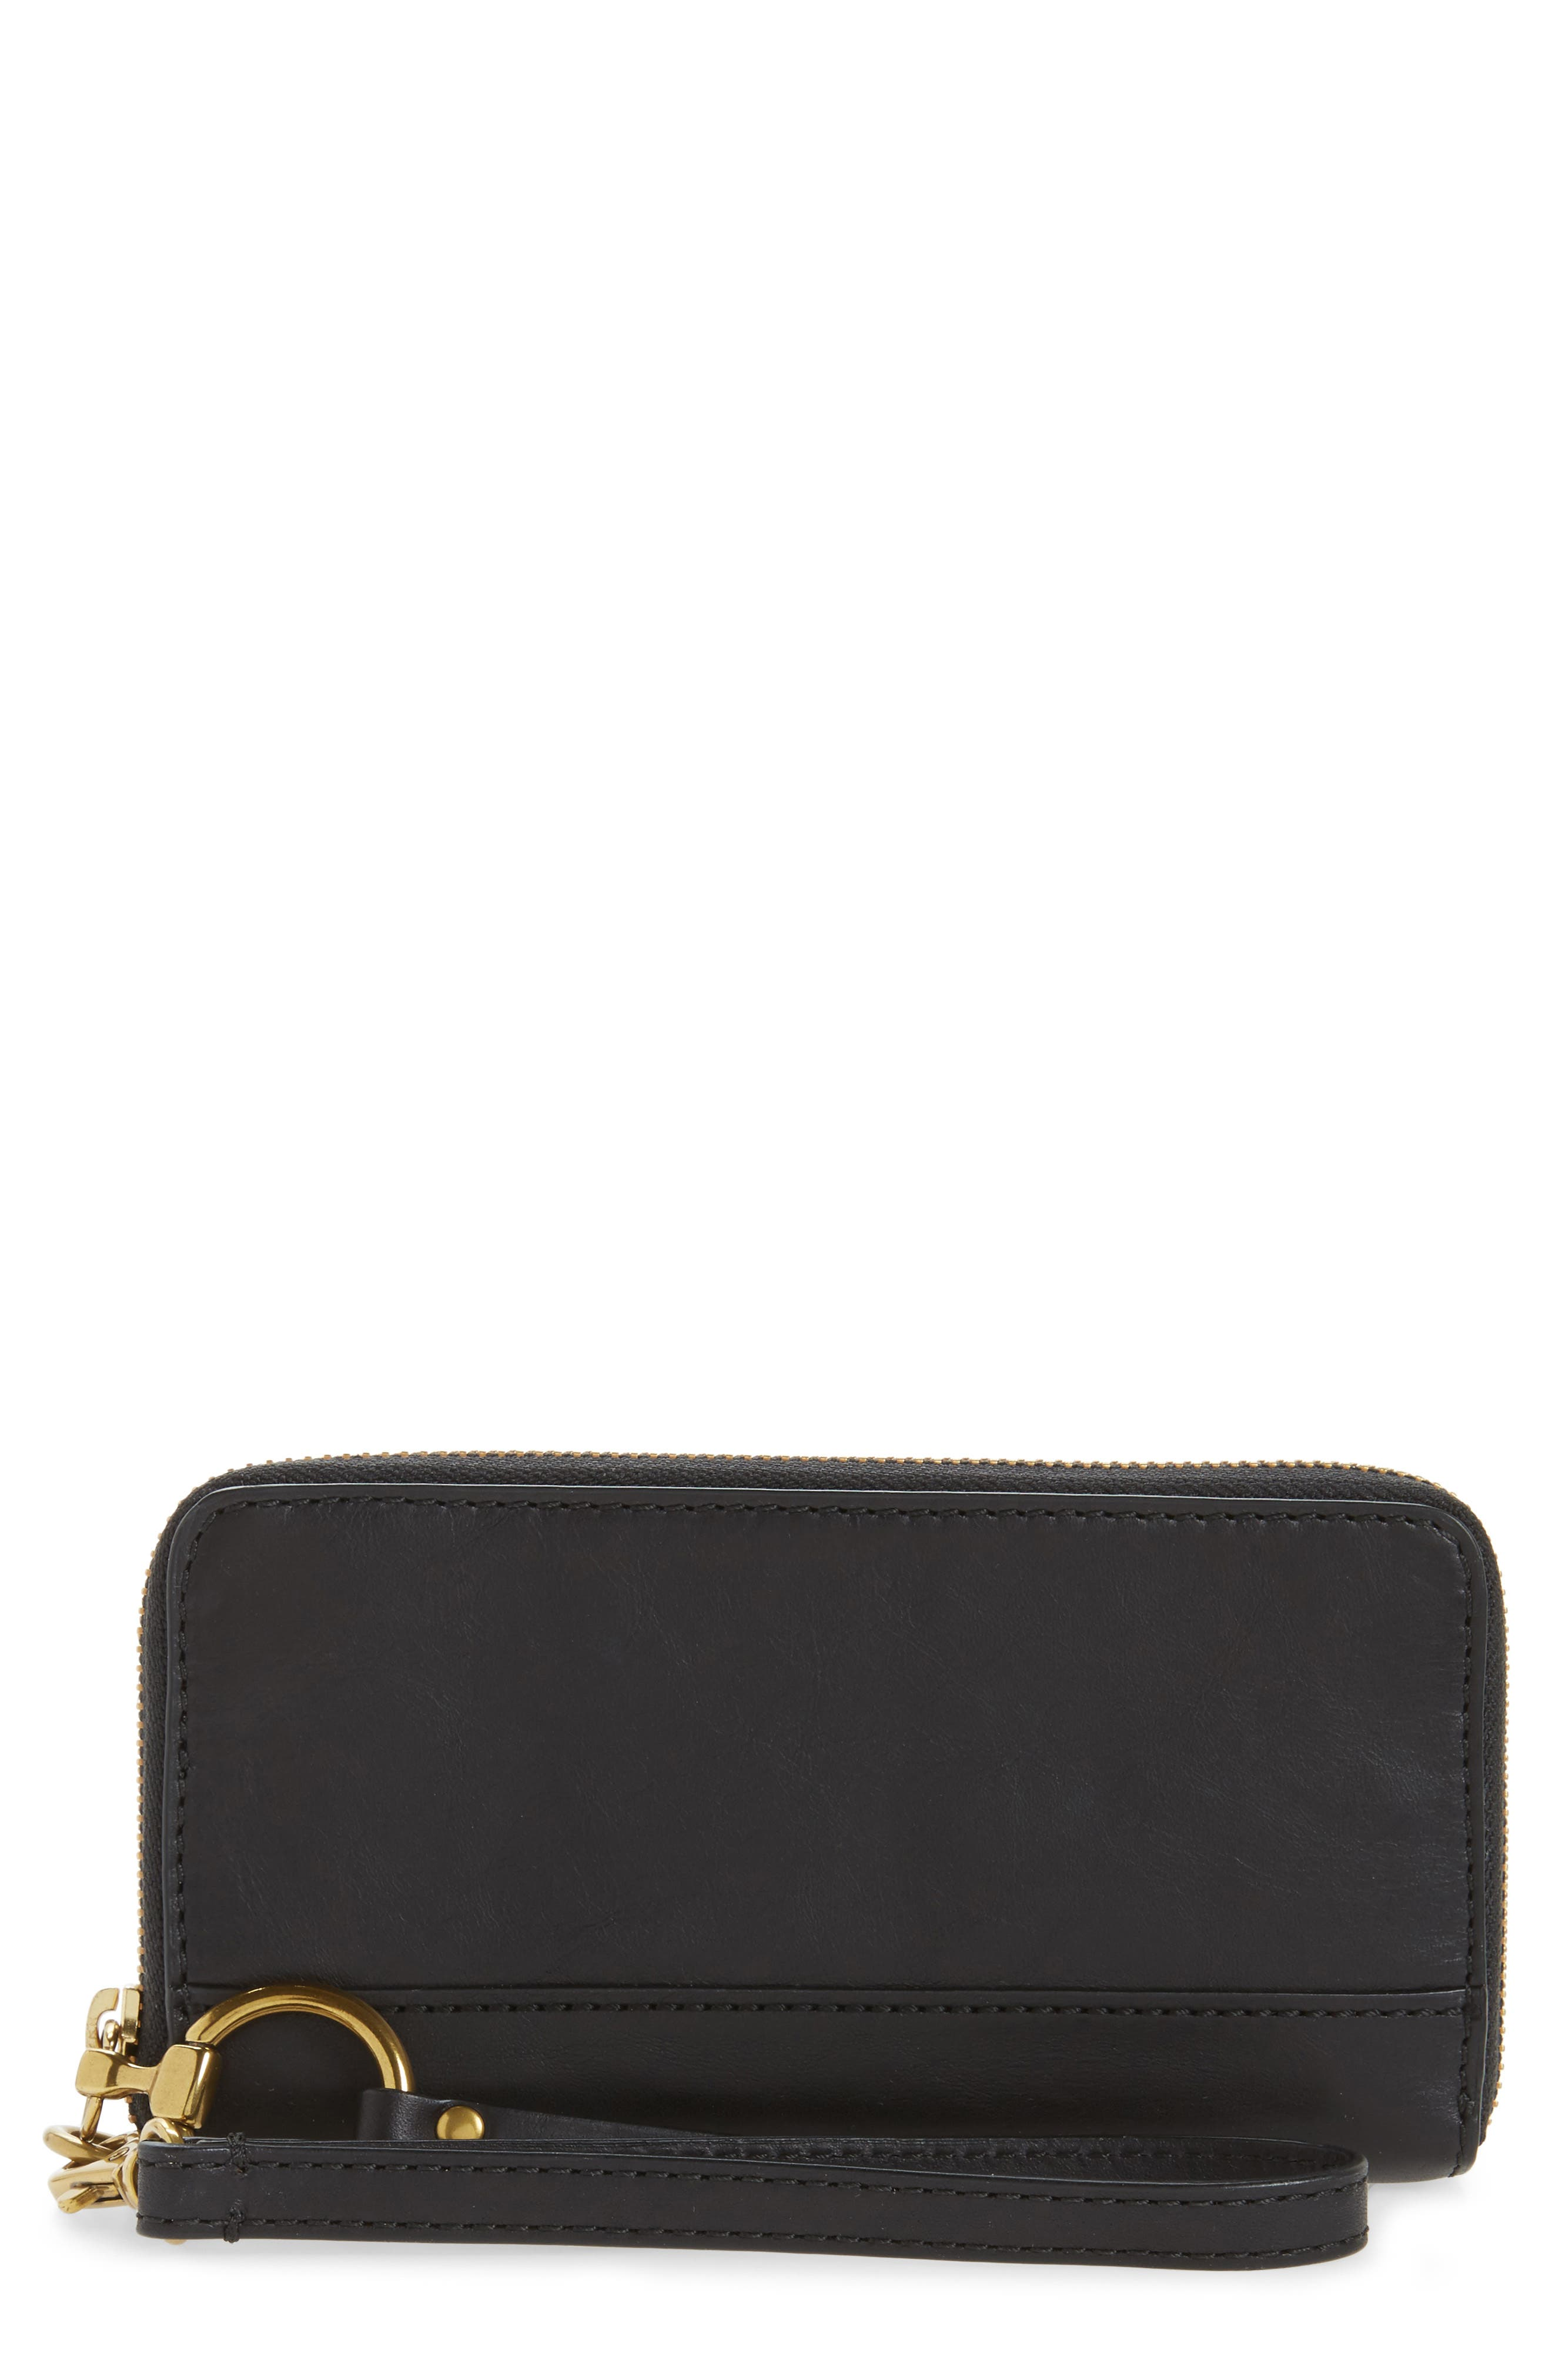 Main Image - Frye Ilana Harness Phone Leather Zip Wallet